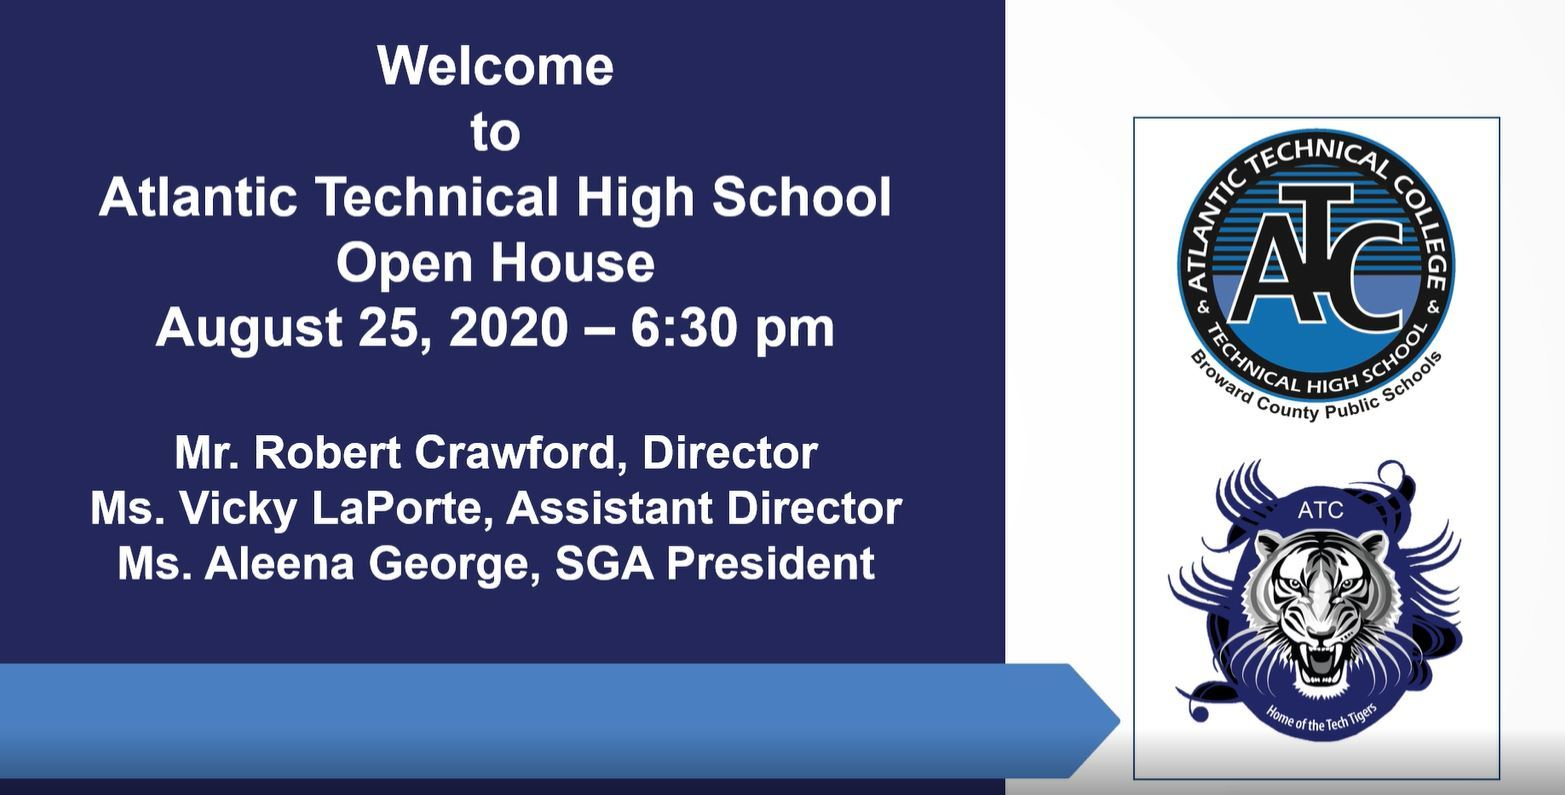 In Case You Missed It - ATC Virtual Open House